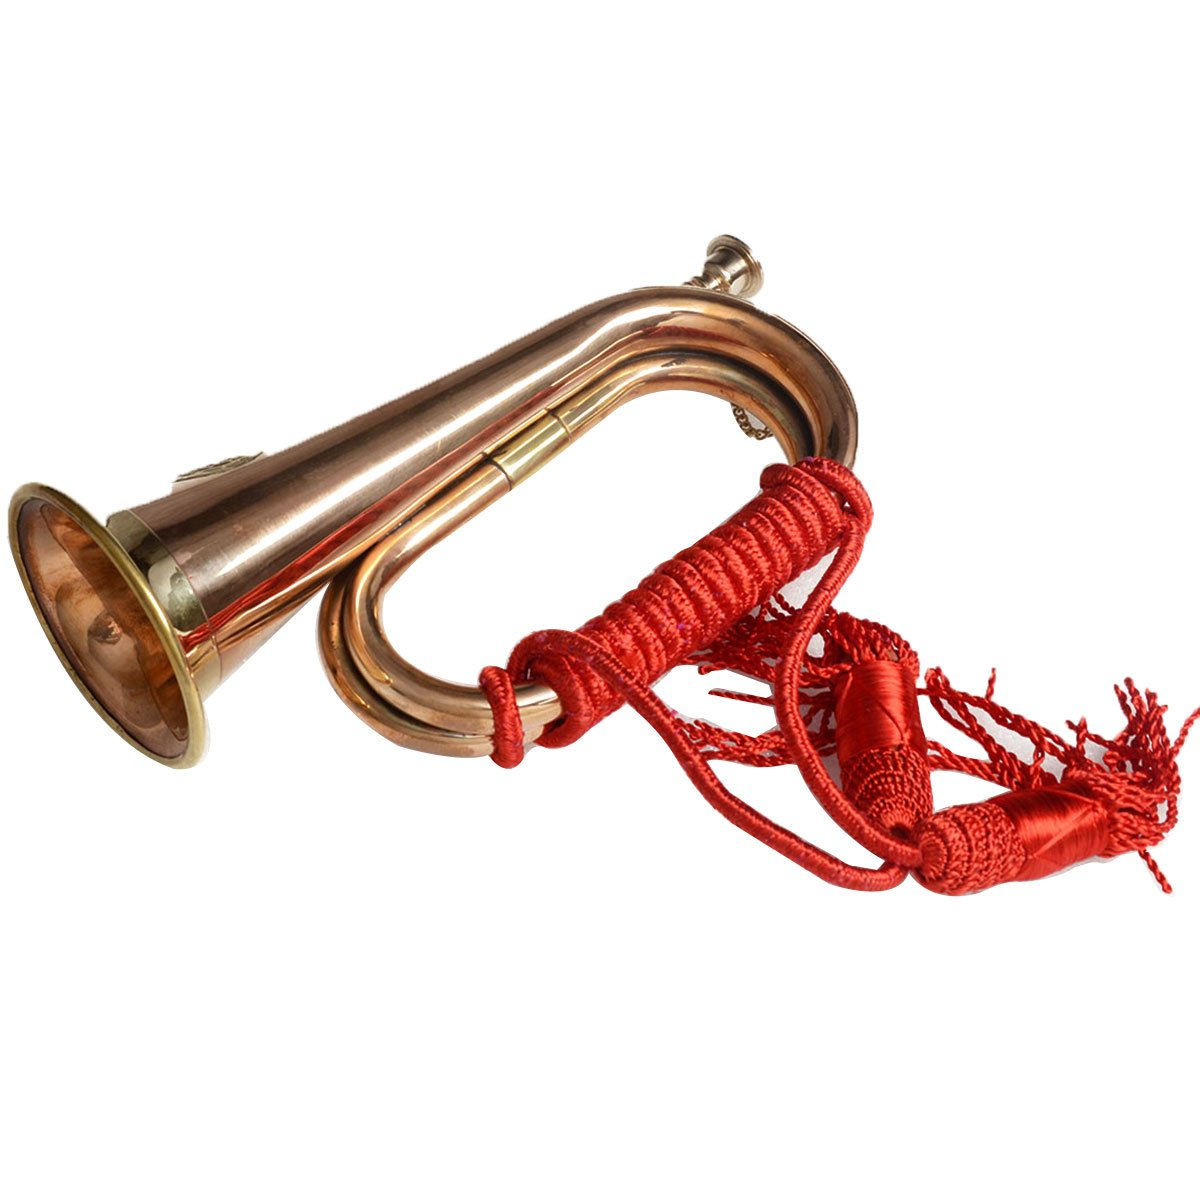 Ectoria EC12-018.CU9 CSA Real Copper Bugle Horn- Red Rope by Ectoria (Image #1)